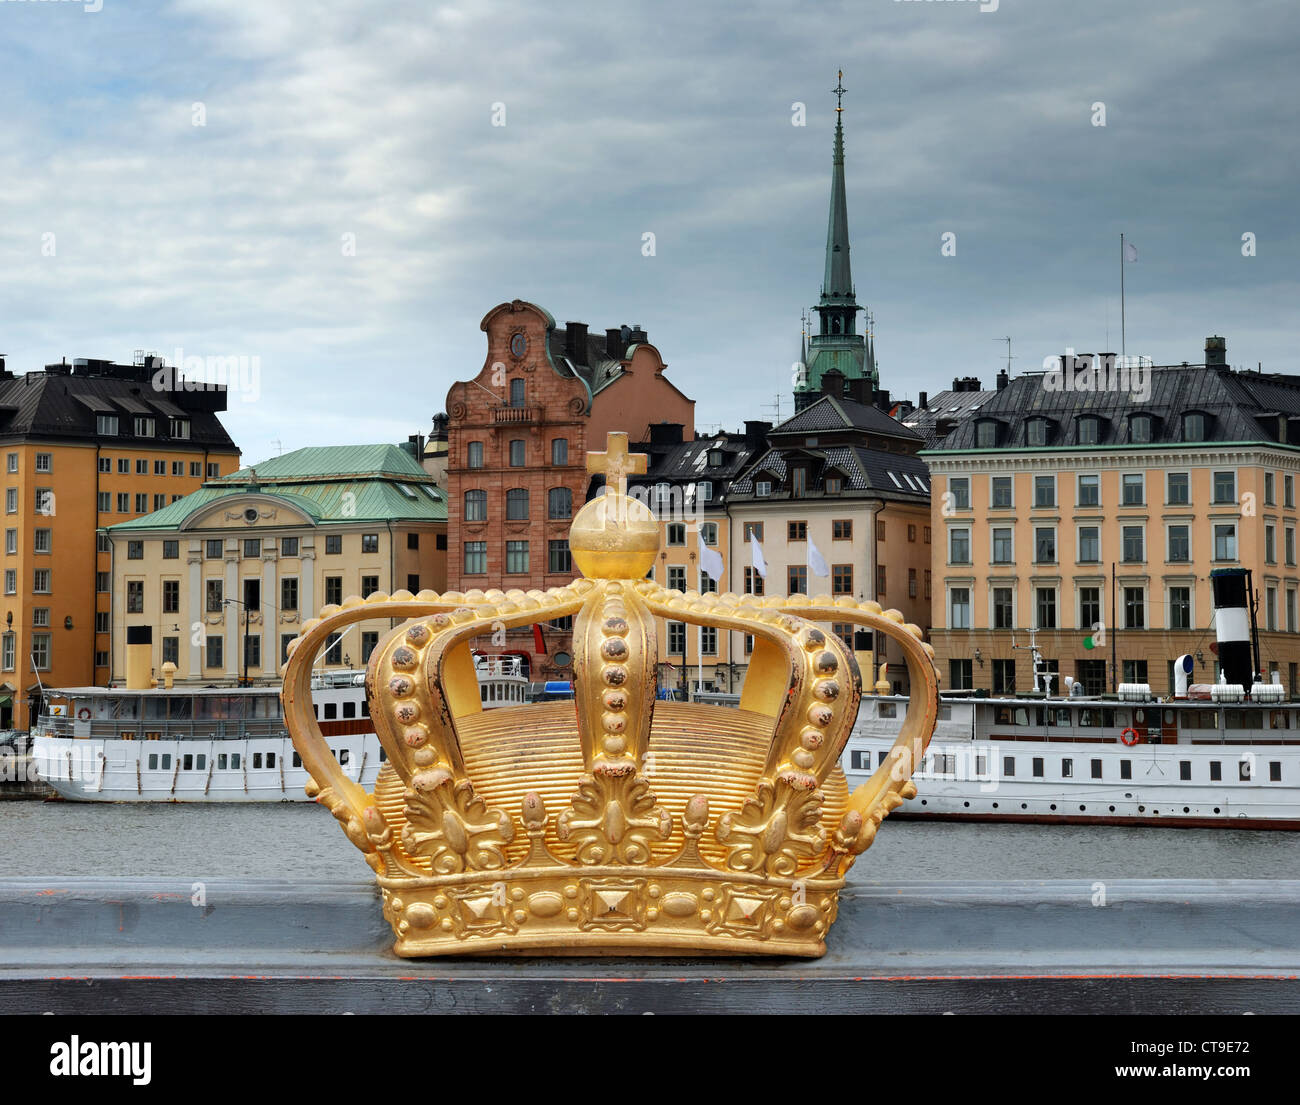 Golden crown on Skeppsholmen bridge in Stockholm, Sweden. - Stock Image